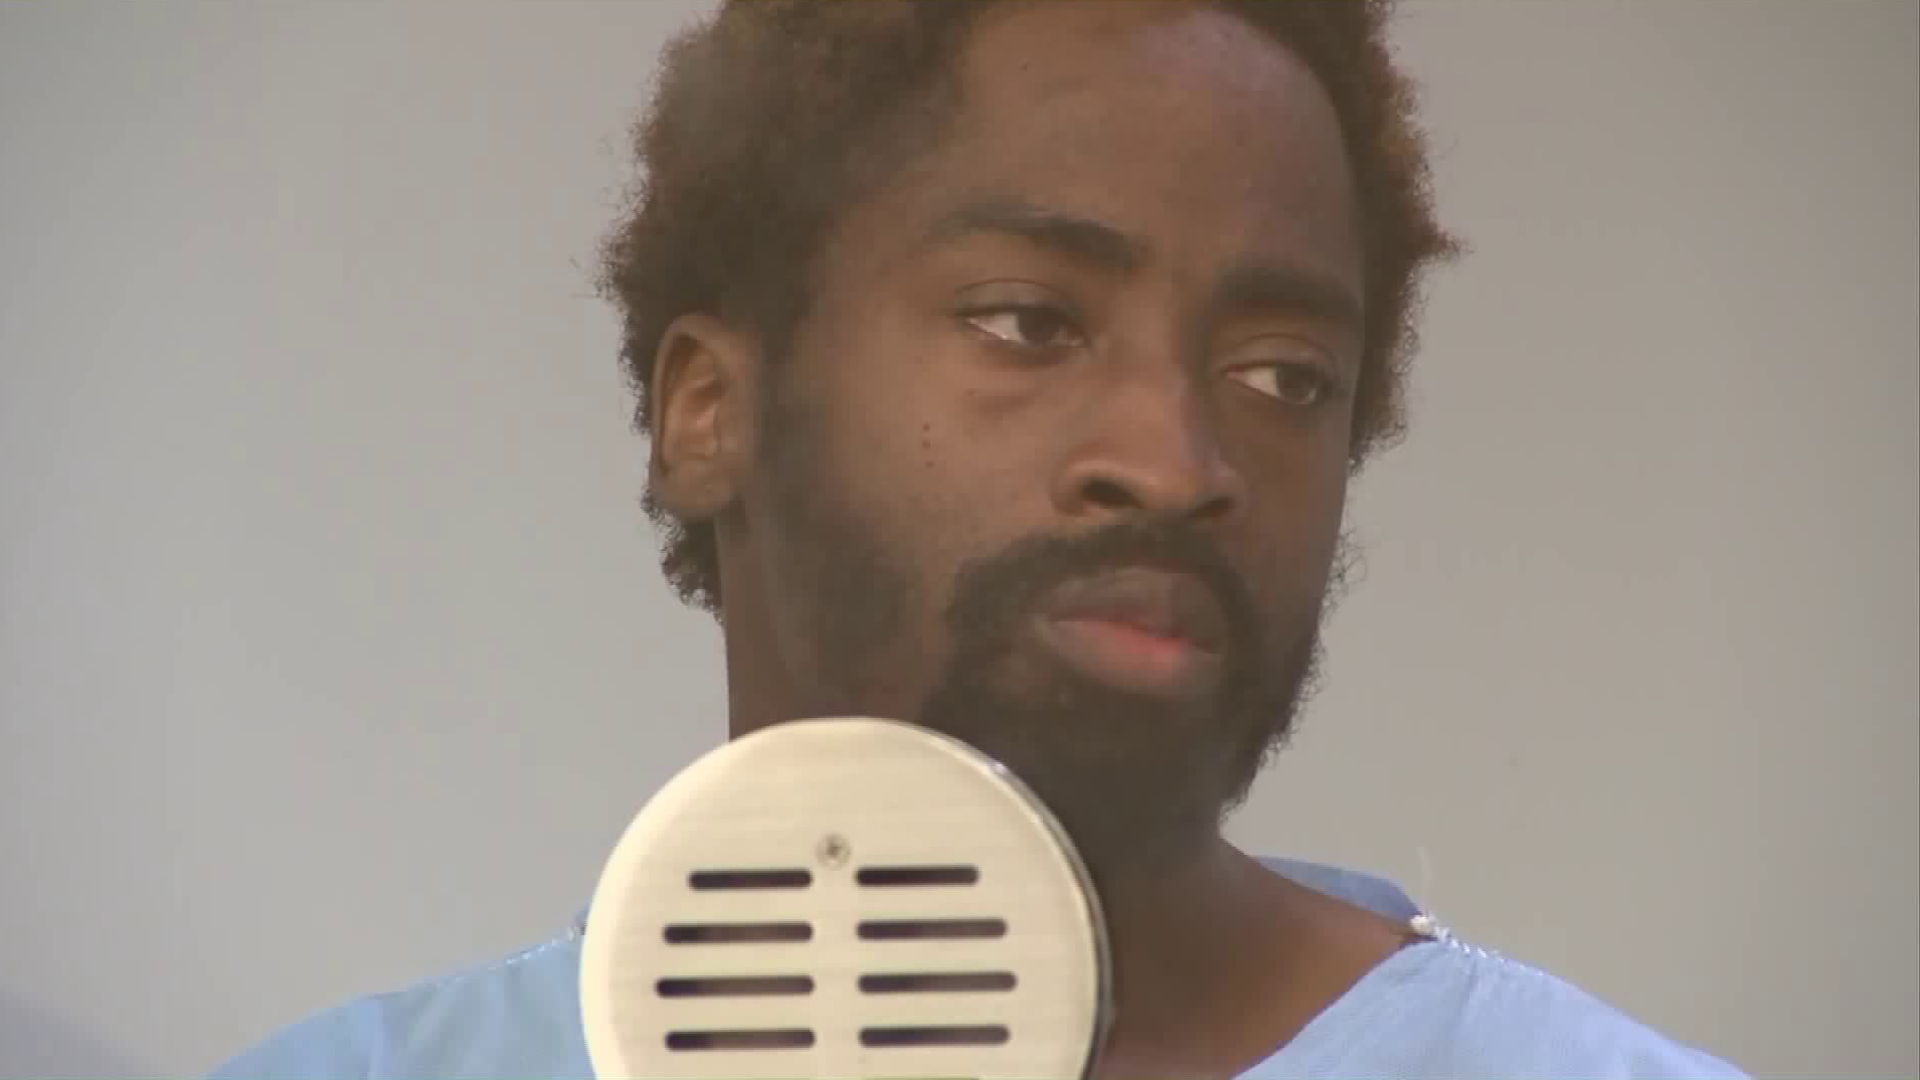 Amad Rashad Redding appears in court in Long Beach on May 15, 2019. (Credit: KTLA)